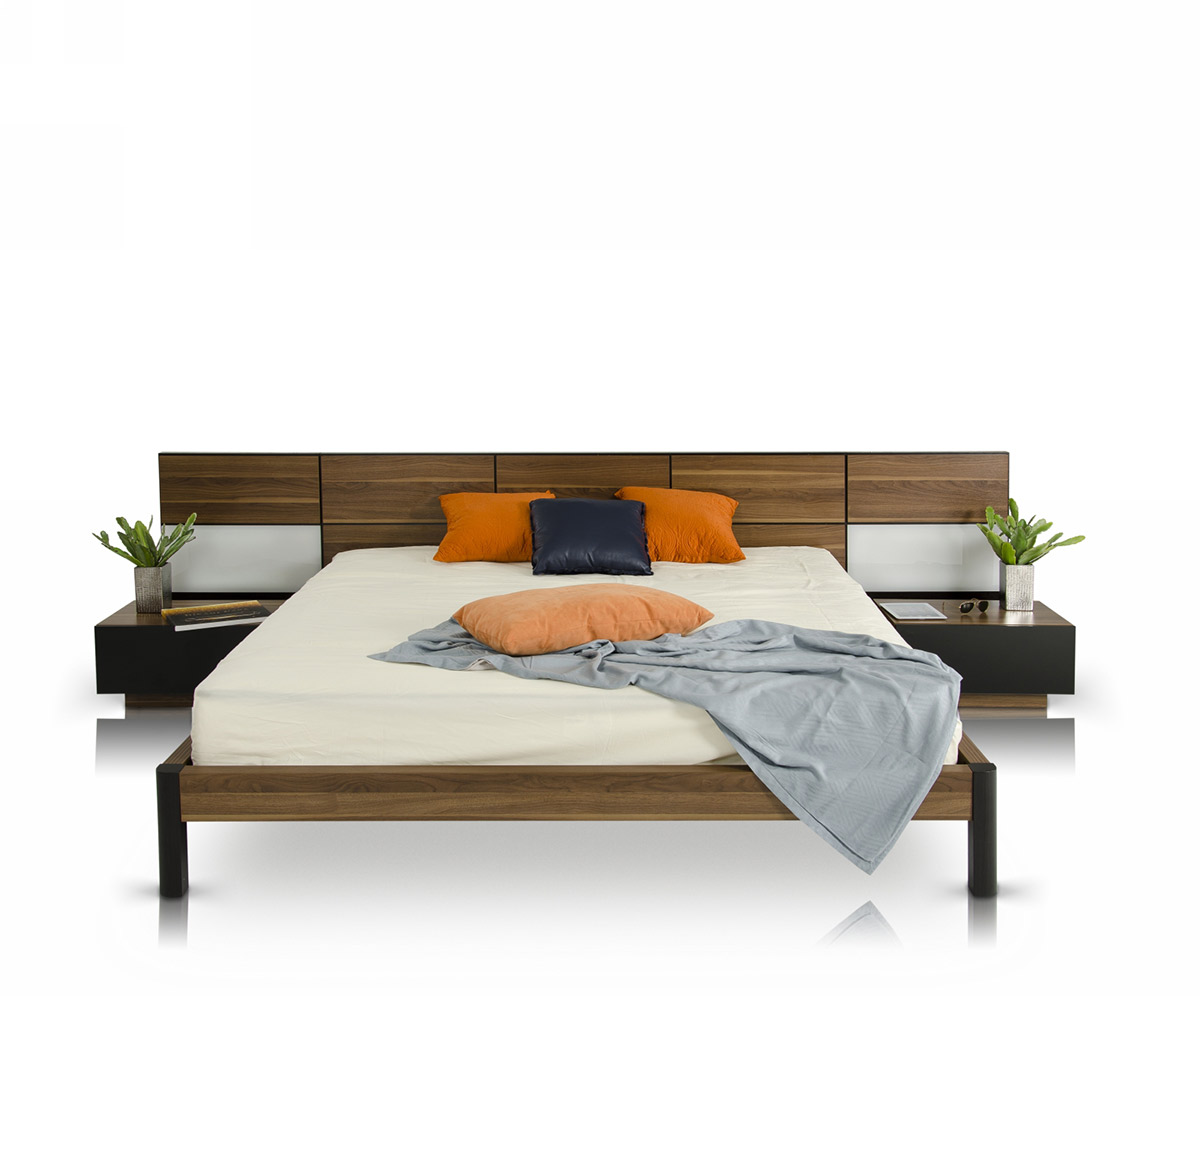 "35"" Veneer and MDF King Bed with Nightstands"